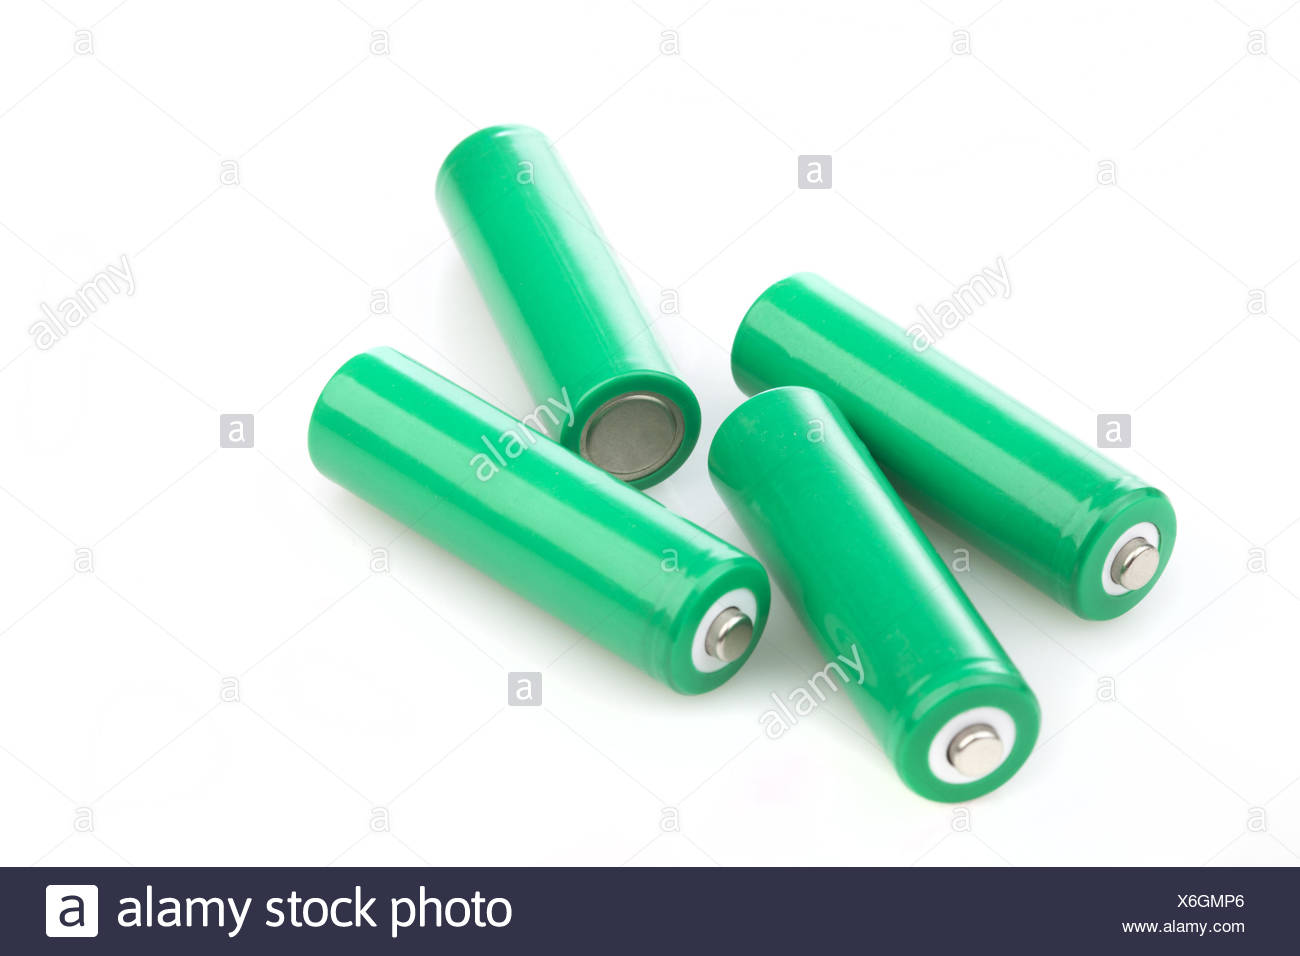 Four rechargeable green eco batteries - Stock Image